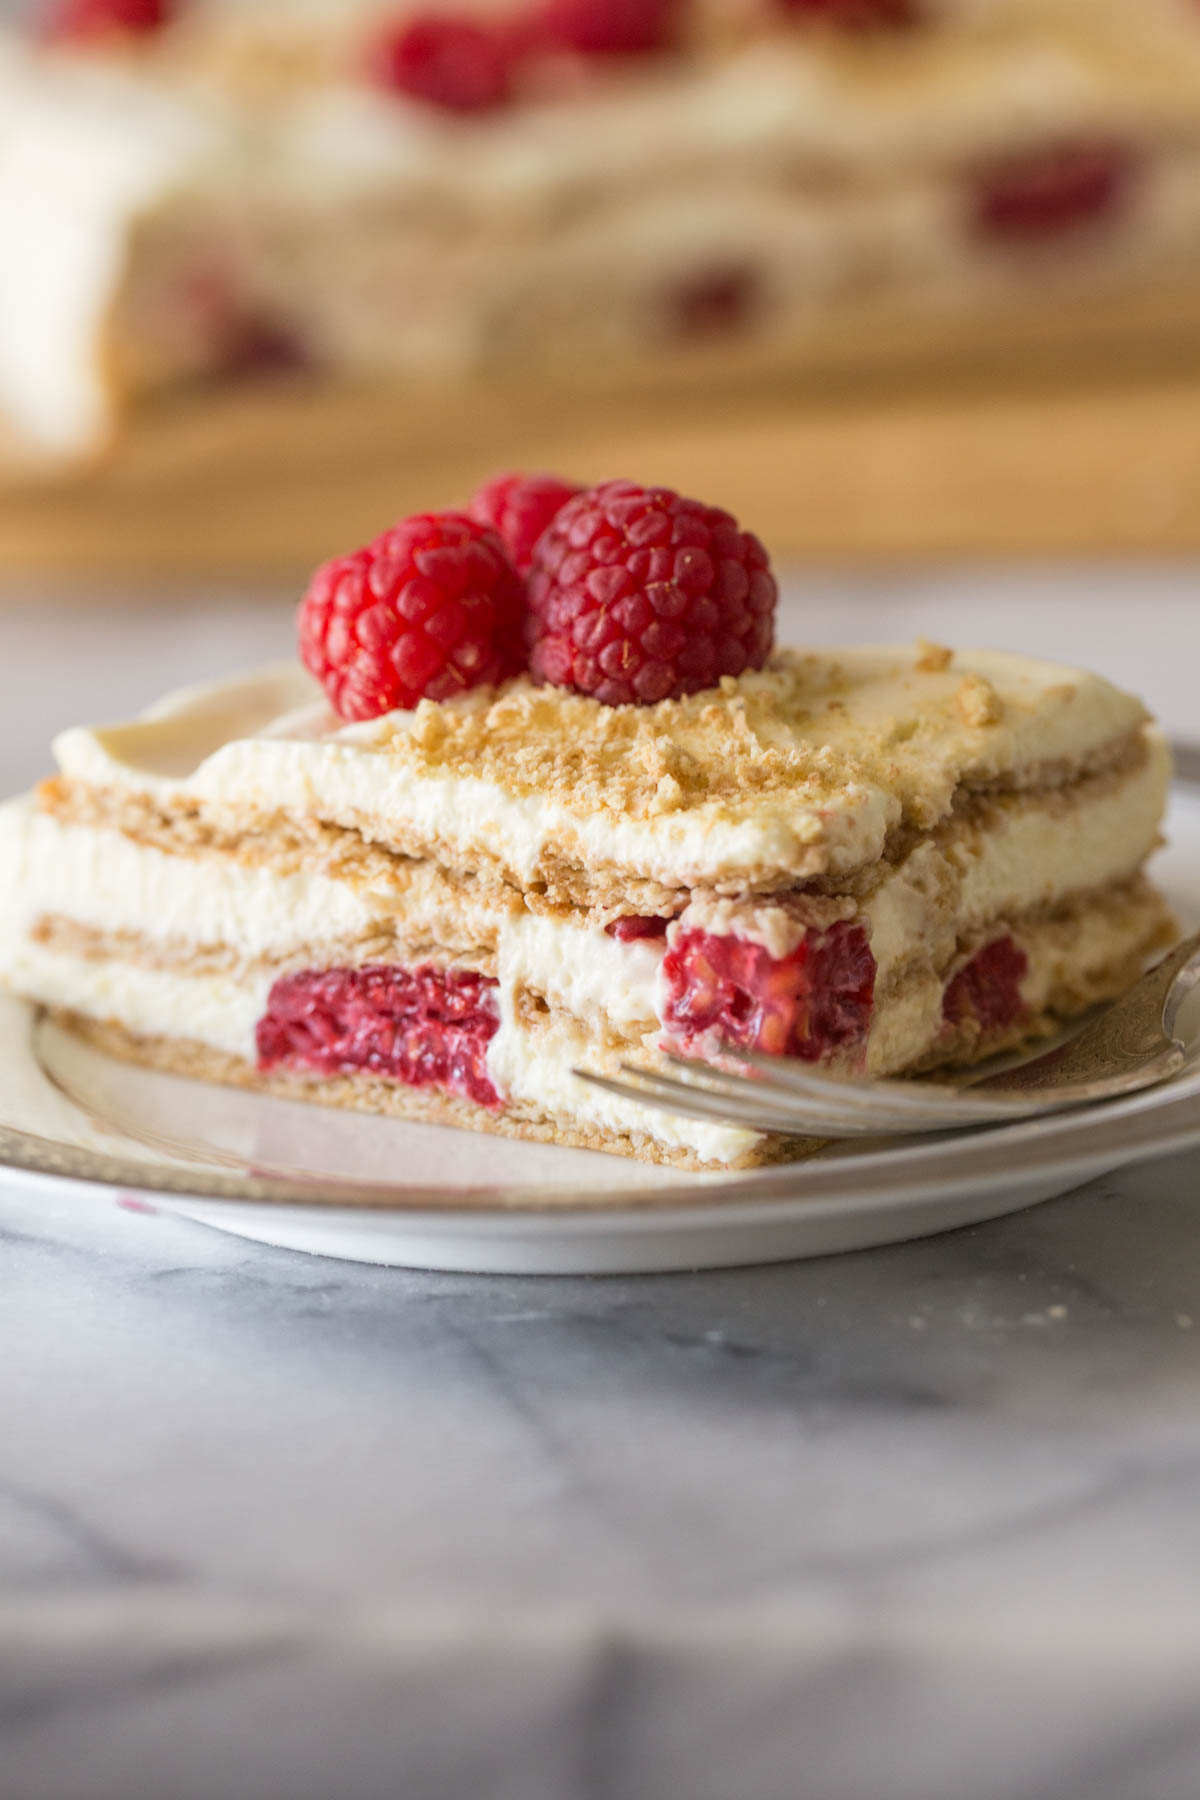 Close up shot of a piece of Raspberry Icebox Cake on a plate with a fork.